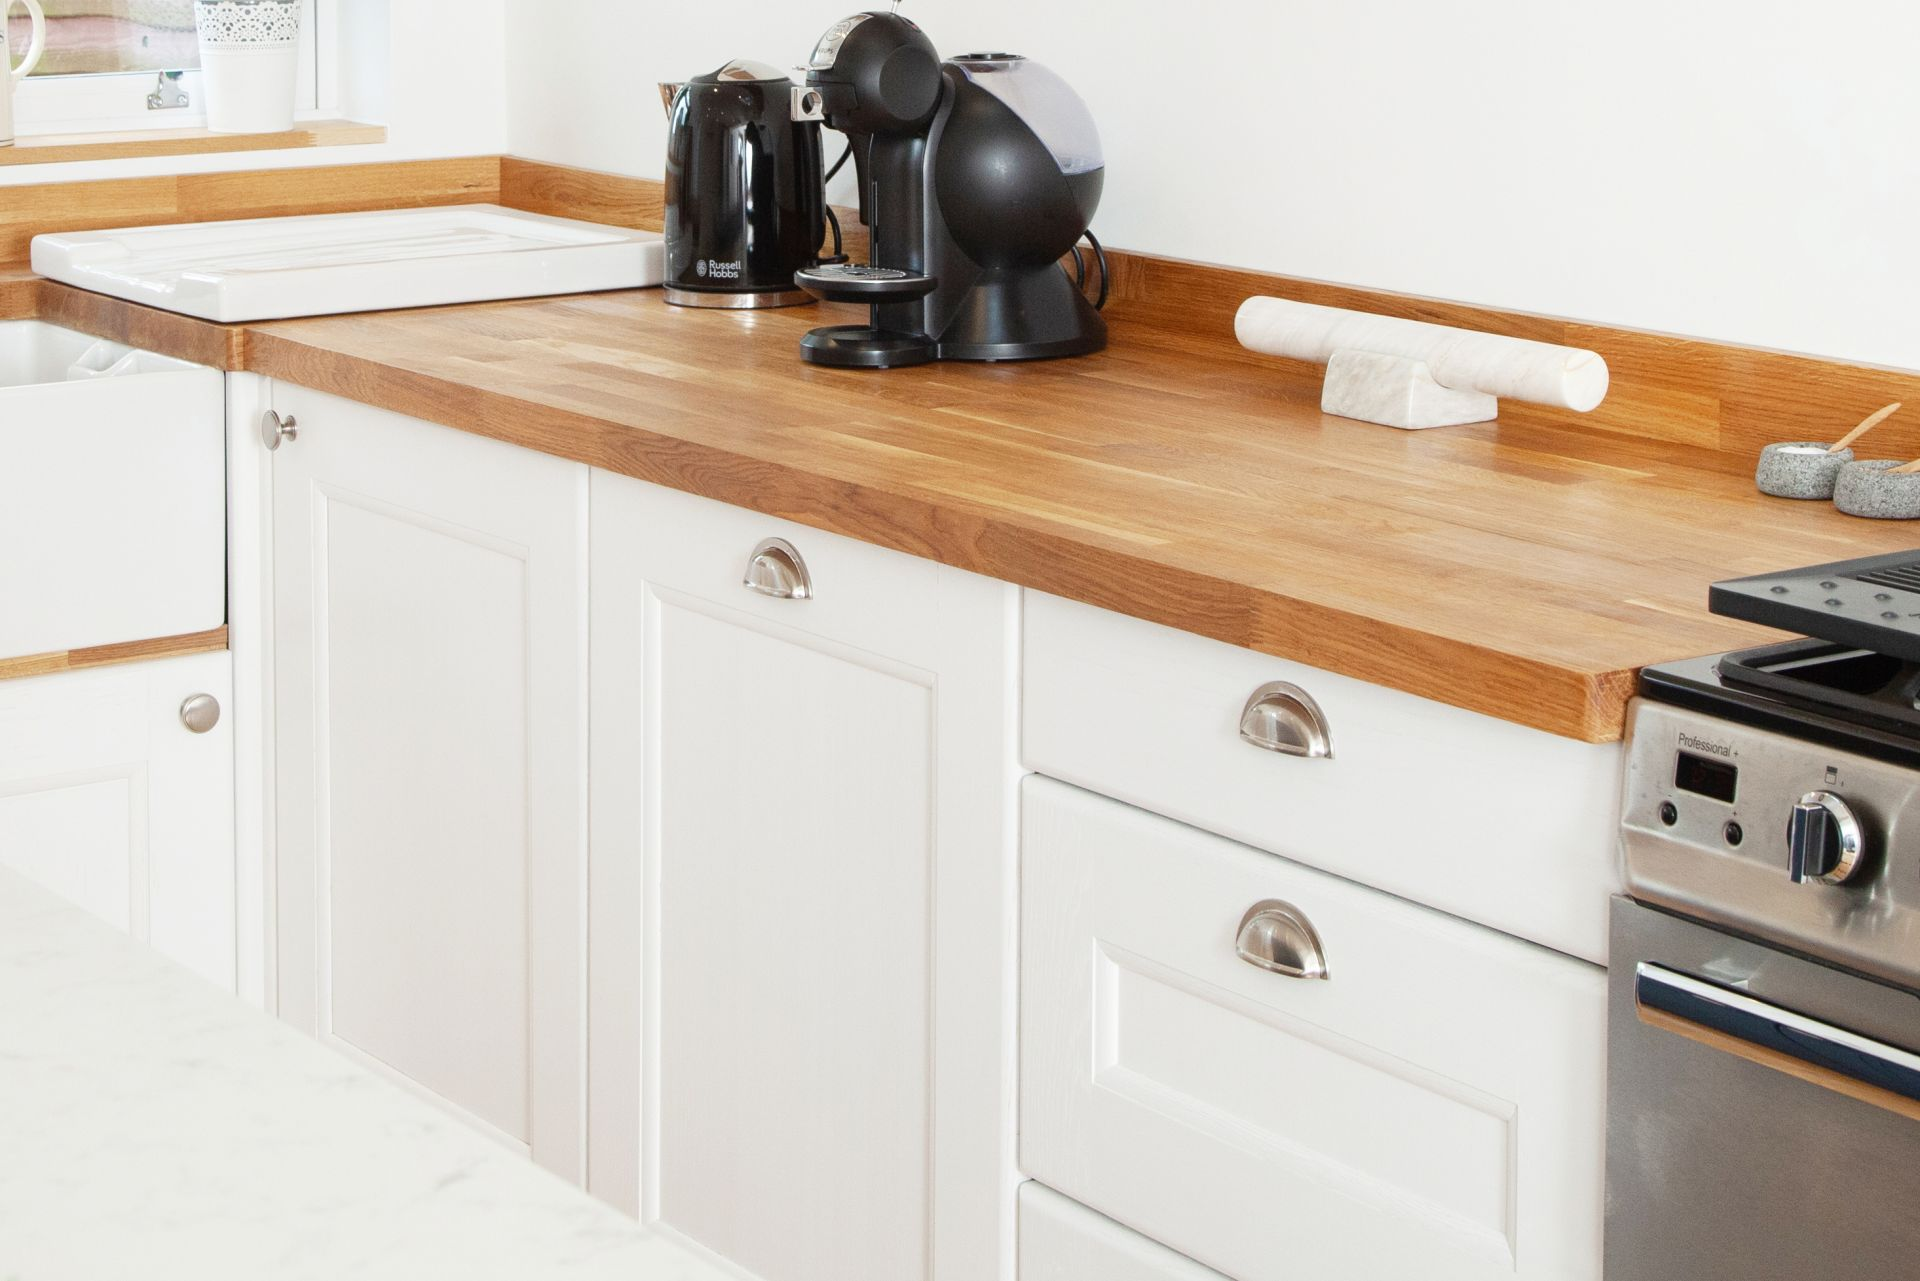 Save up to £1000 on your new kitchen